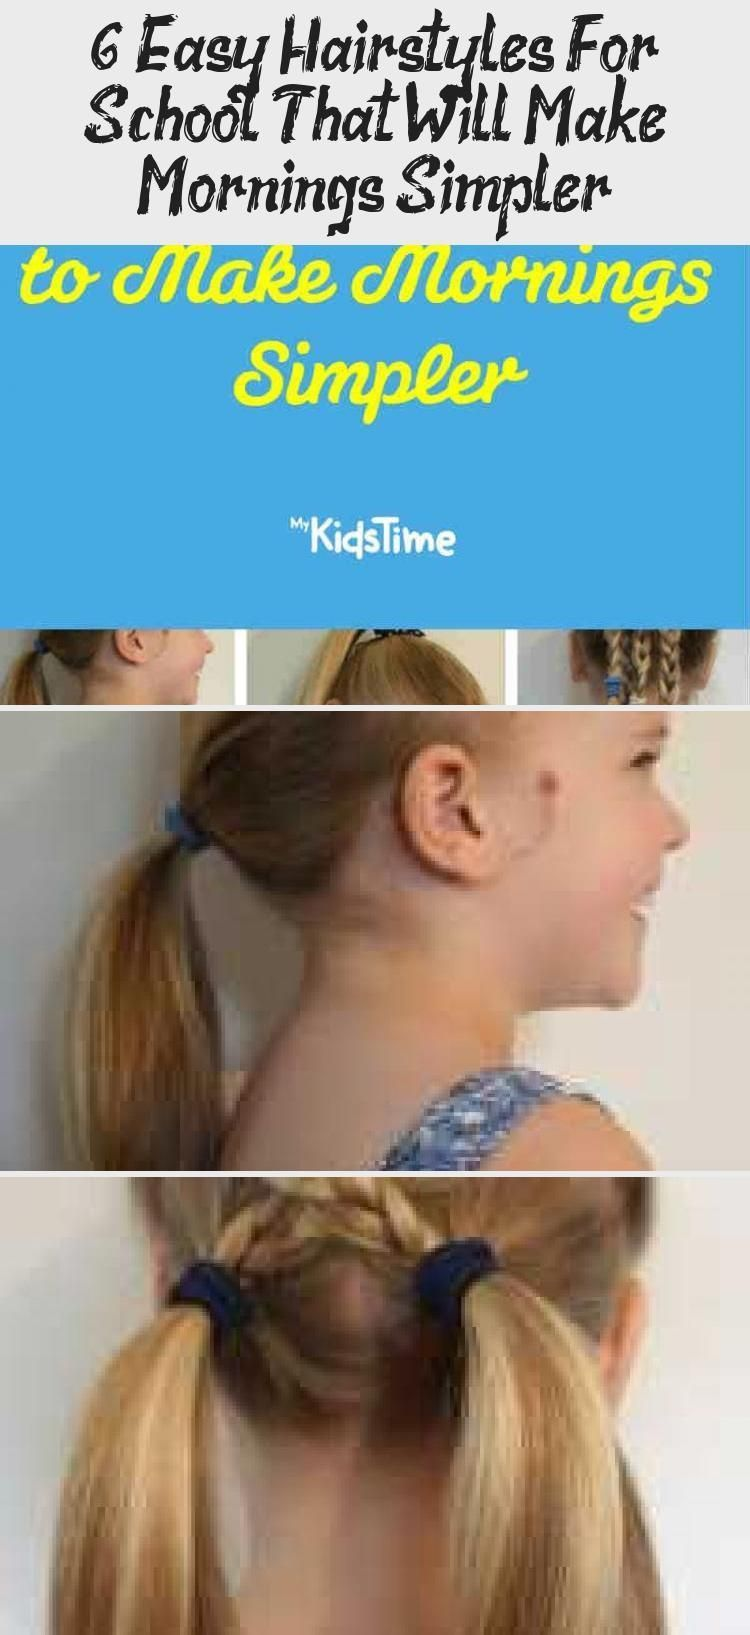 6 simple school hairstyles that make the morning easier – Pinokyo – 6 simple school hairstyles that make the morning easier … - Lombn Sites